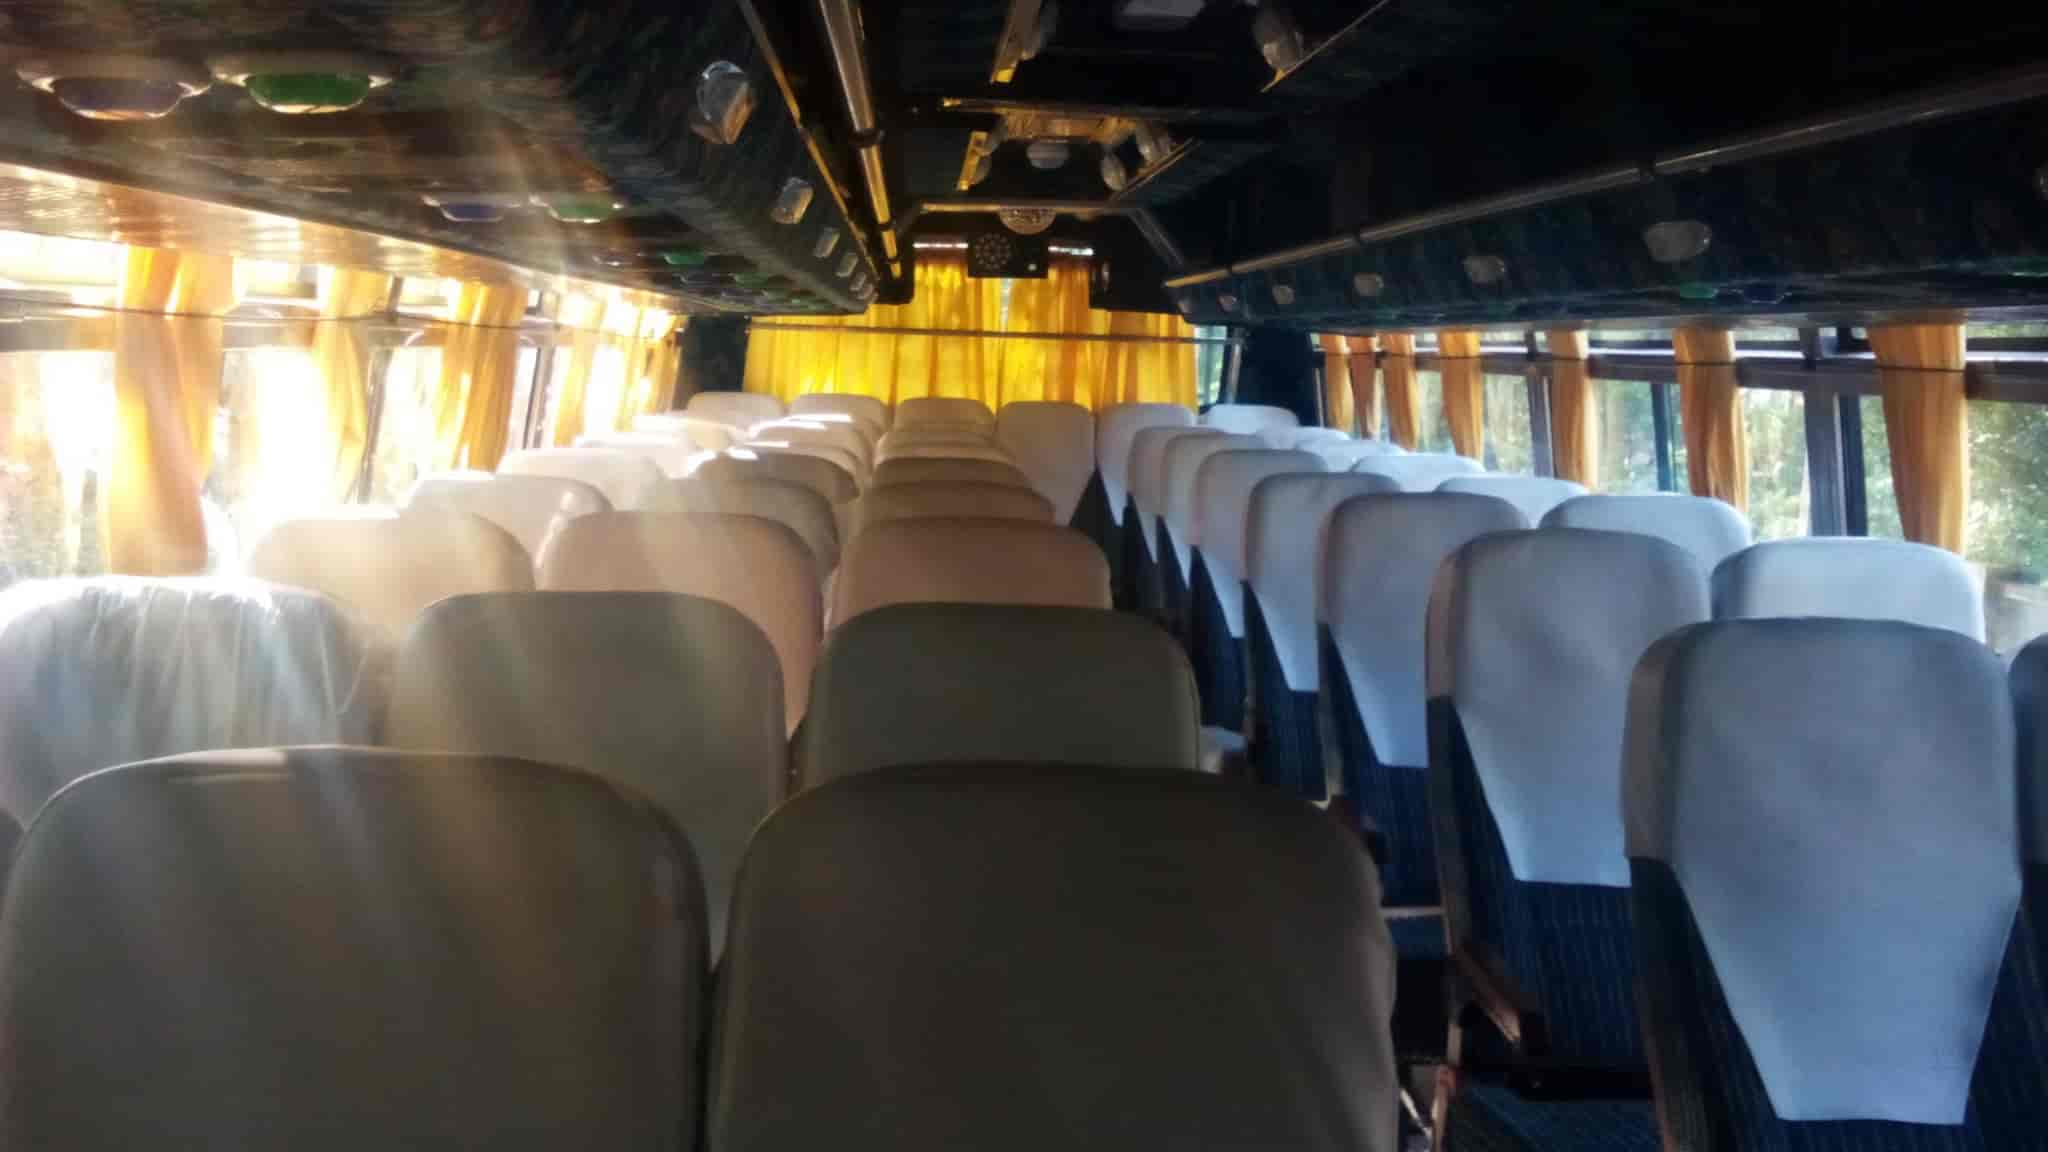 Tourist Bus Booking In Kottayam Thirunra On Hire Justdial